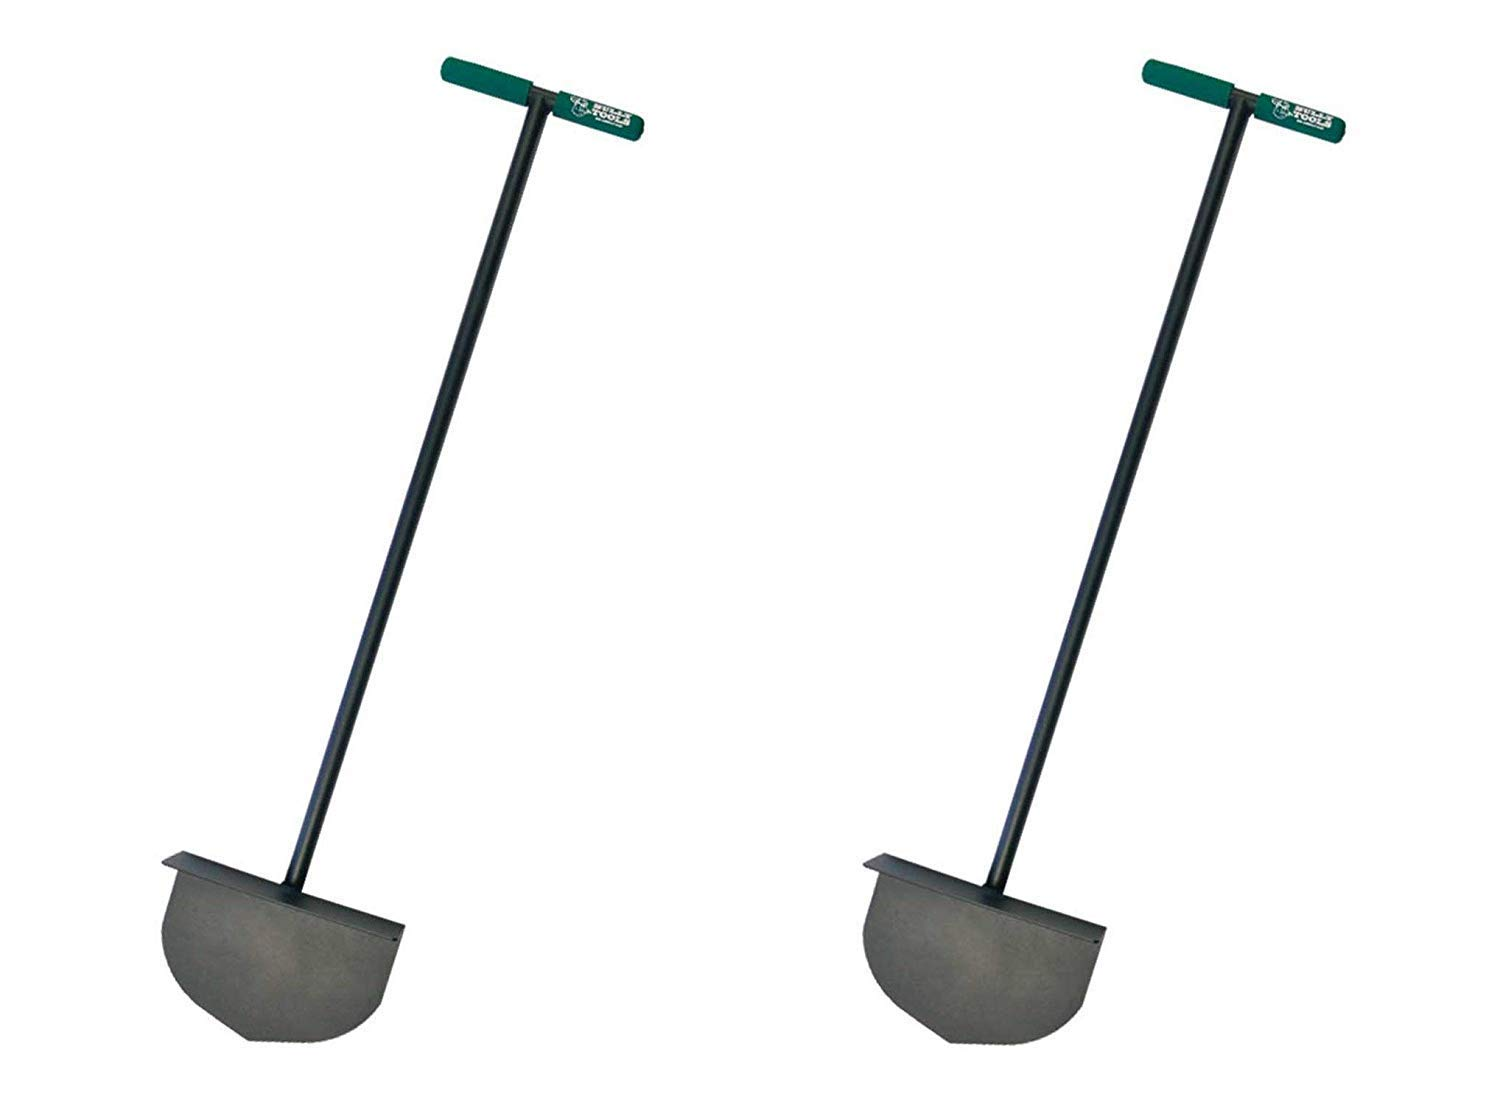 Bully Tools 92251 Round Lawn Edger with Steel T-Style Handle (Pack of 2)